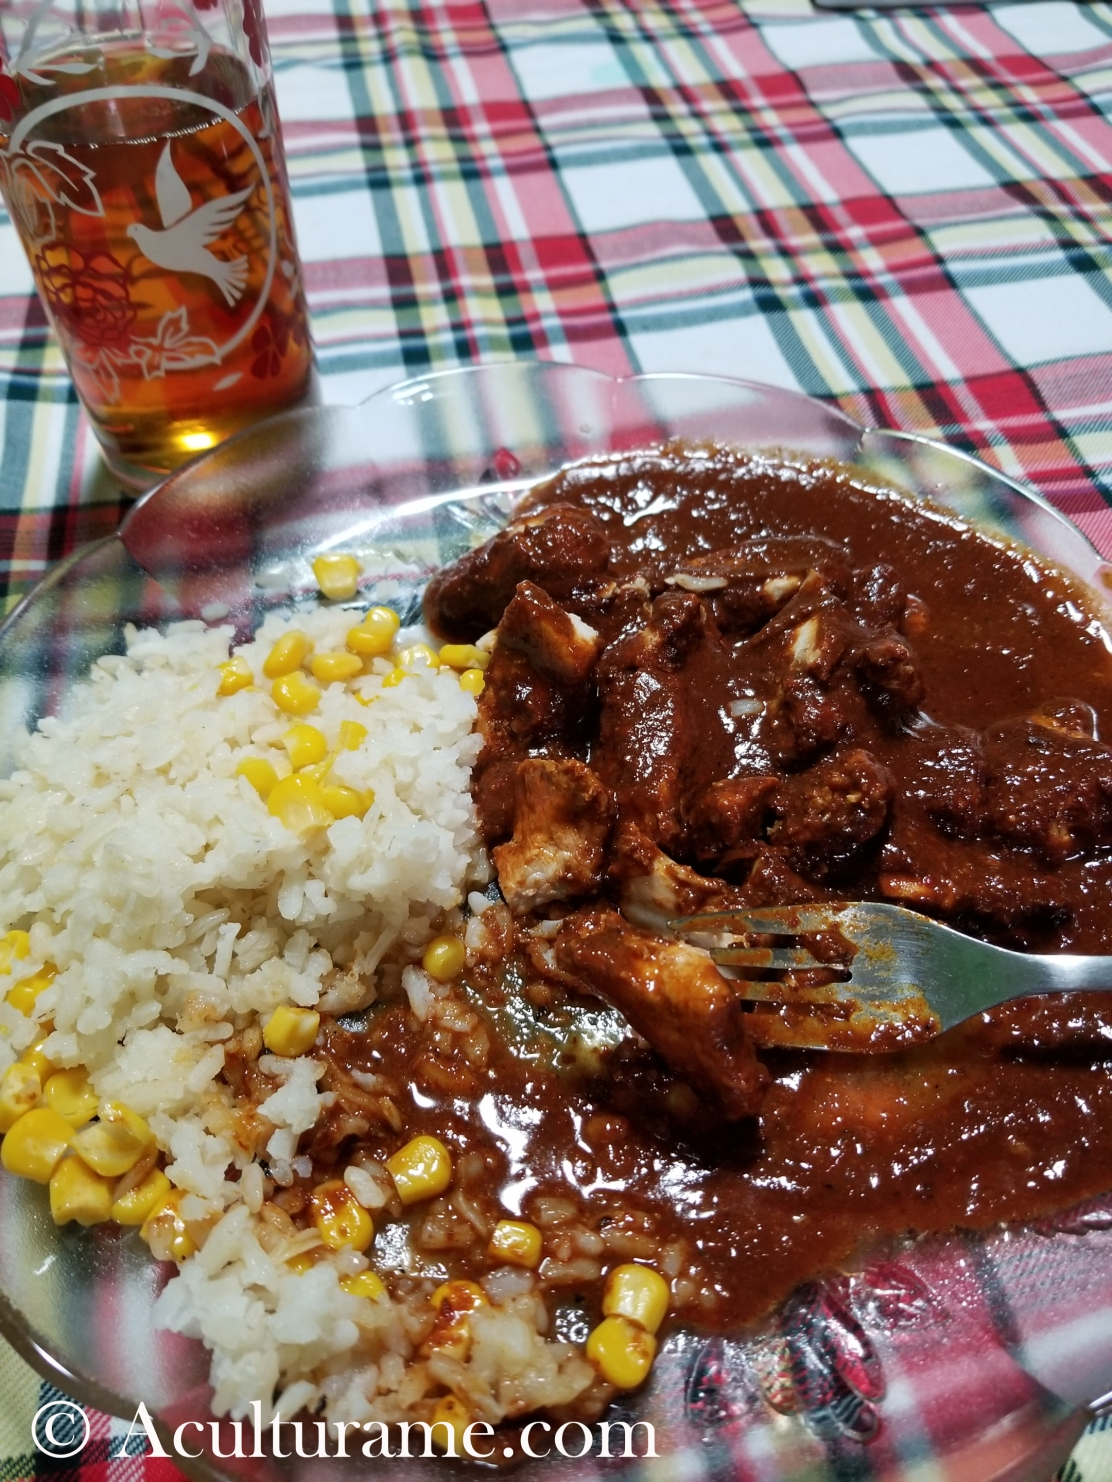 Mole was my grandmother's most beloved dish. When I eat it I think of her.